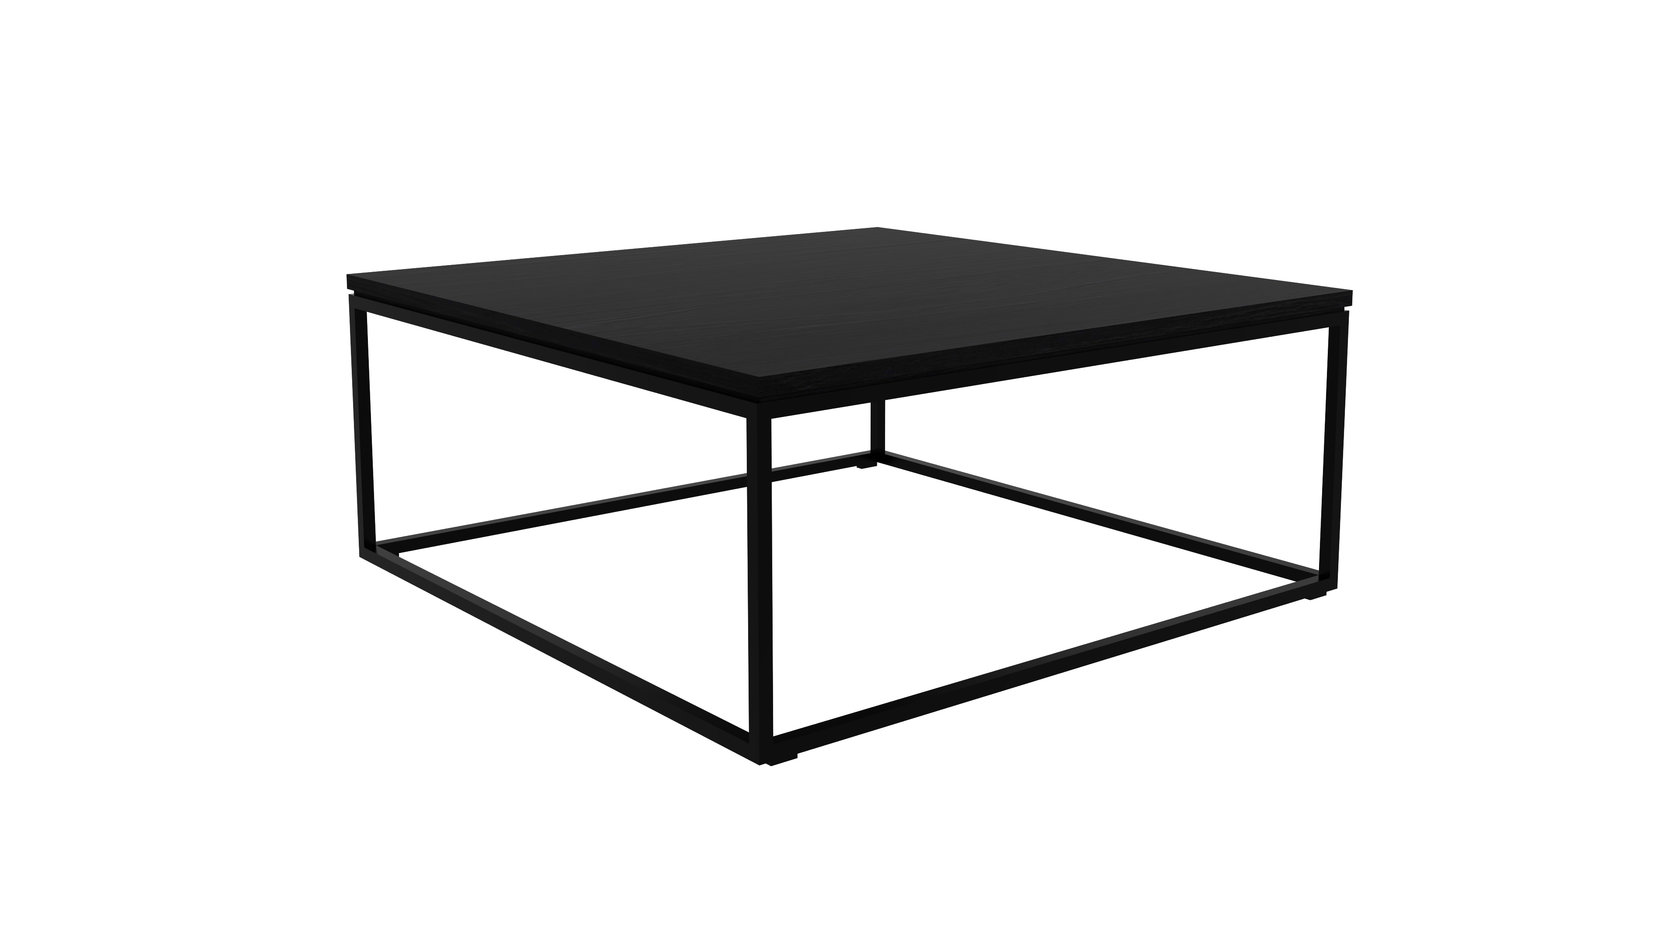 Couchtisch Samoa Eiche Ethnicraft Oak Thin Black Coffee Table Couchtisch Eiche